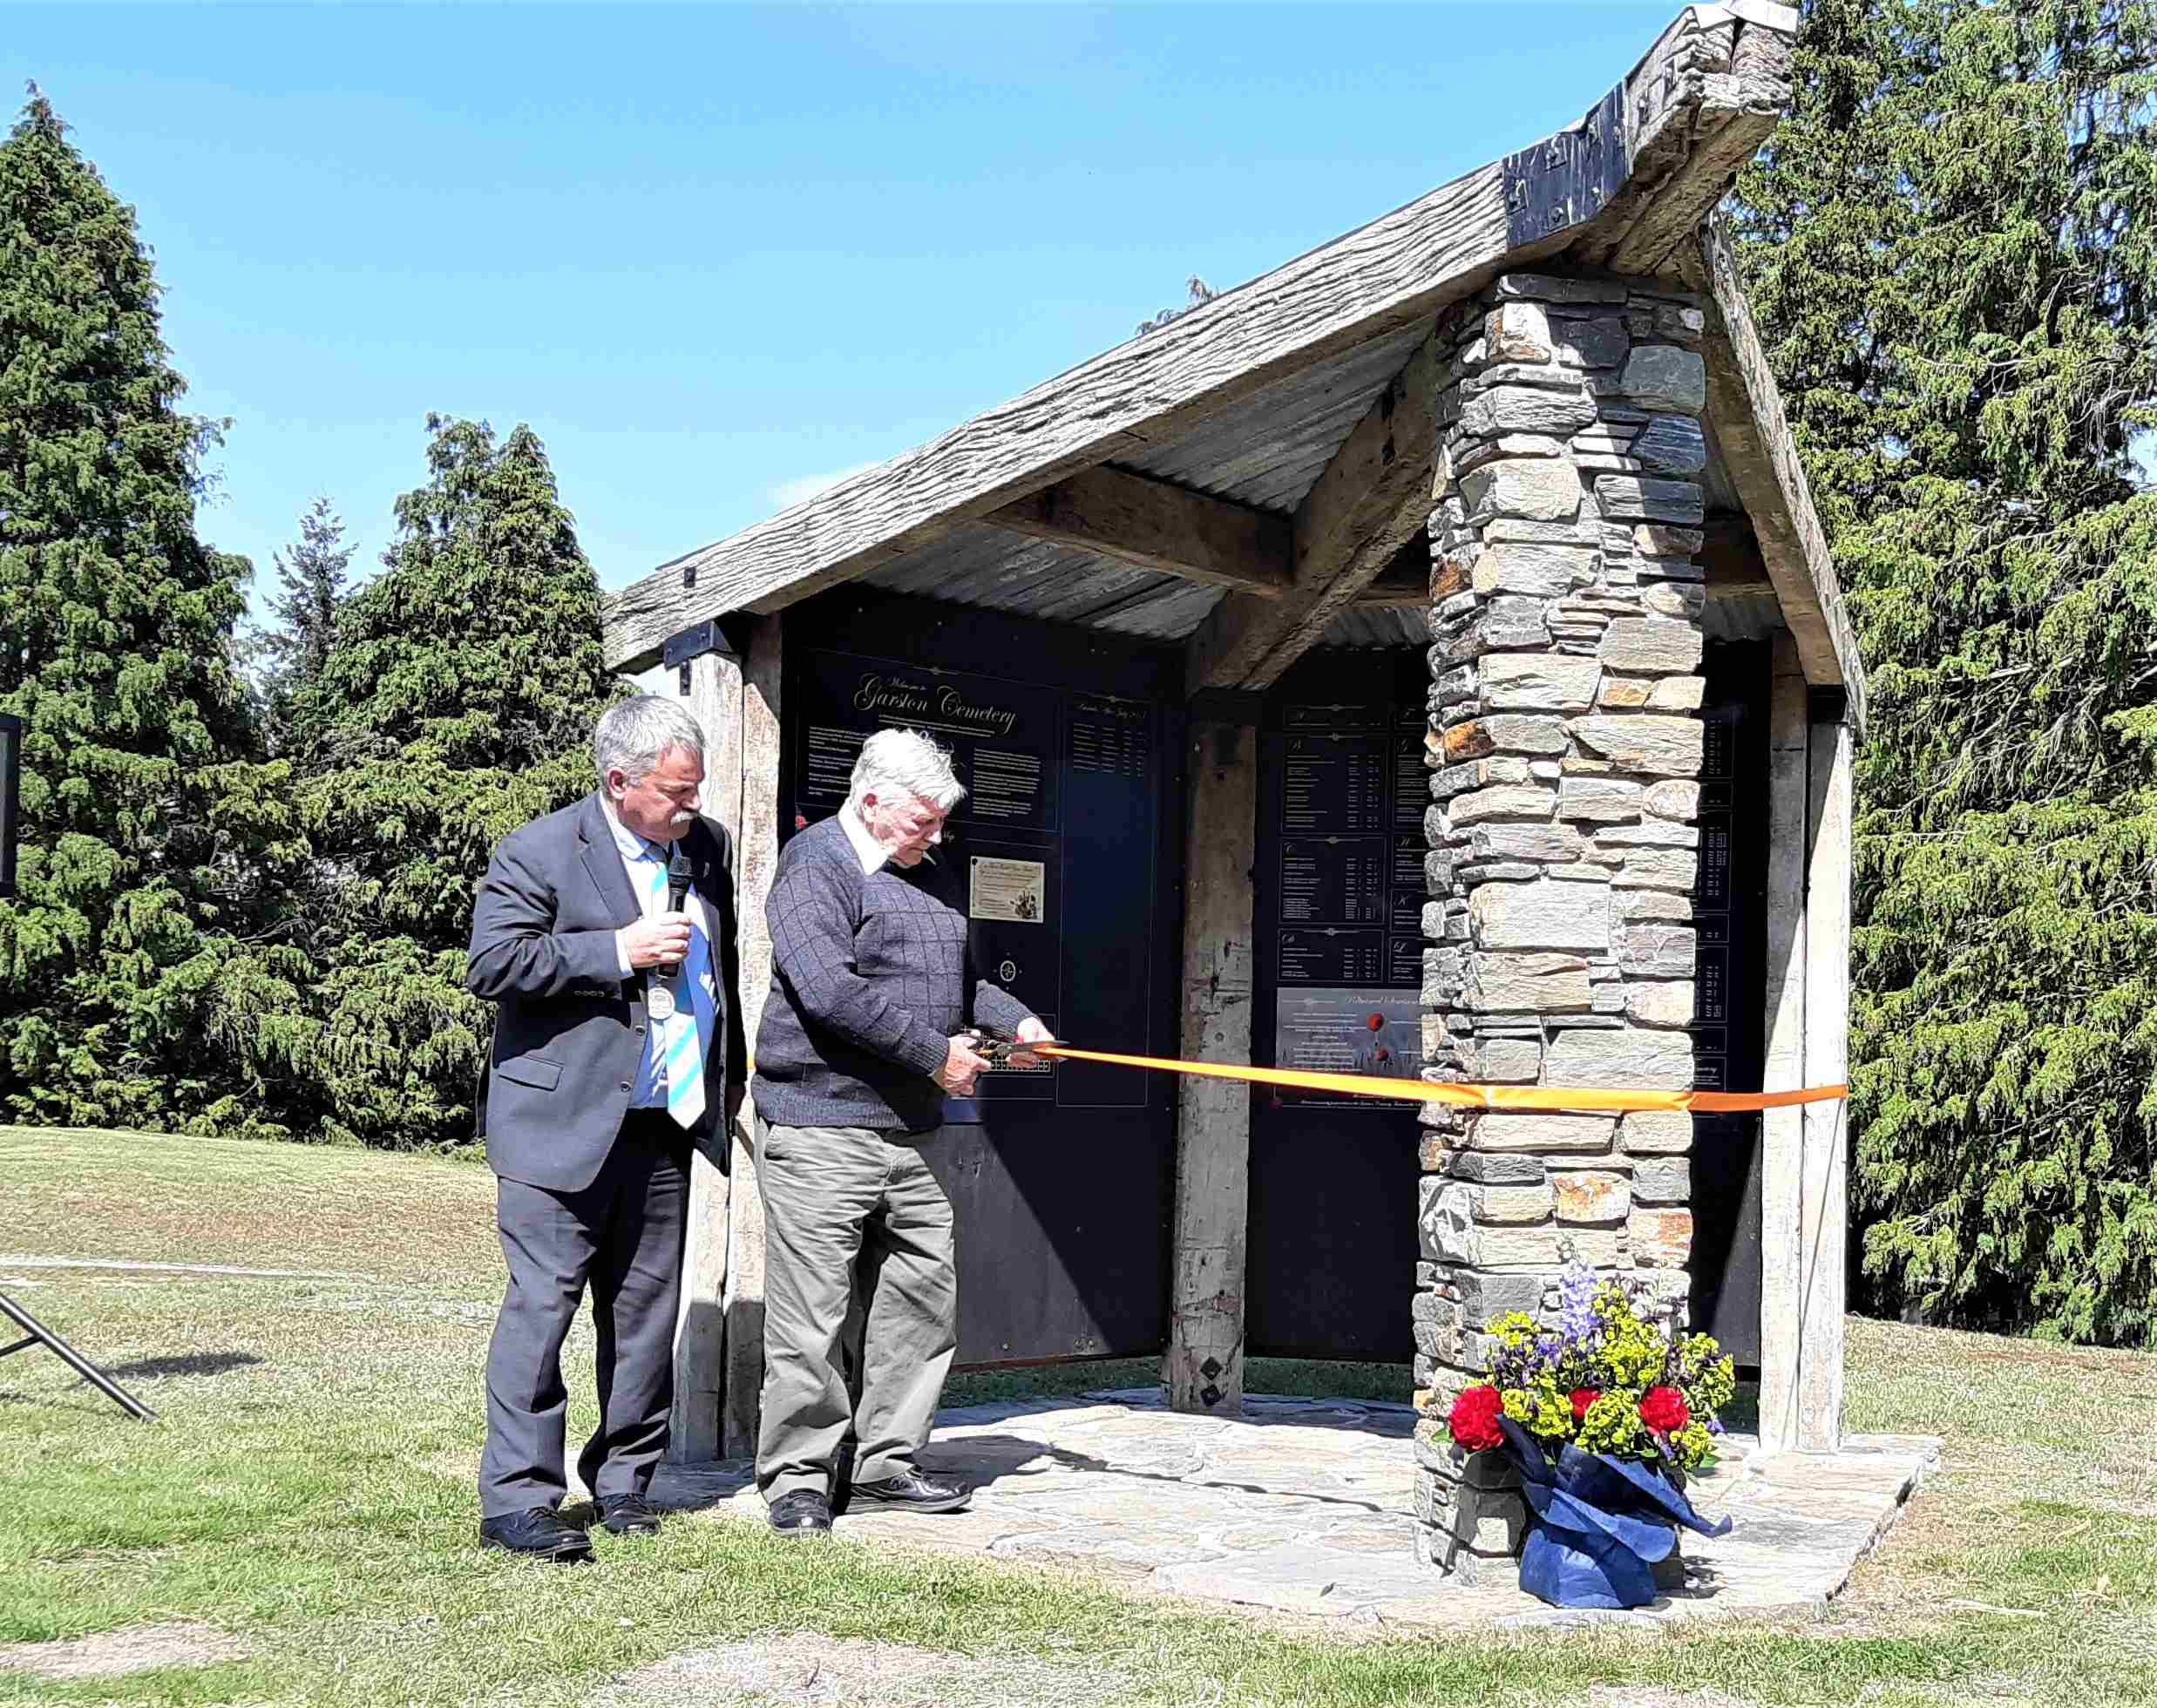 Cutting the ribbon on the Garston Cemetery Memorial Board Shelter.